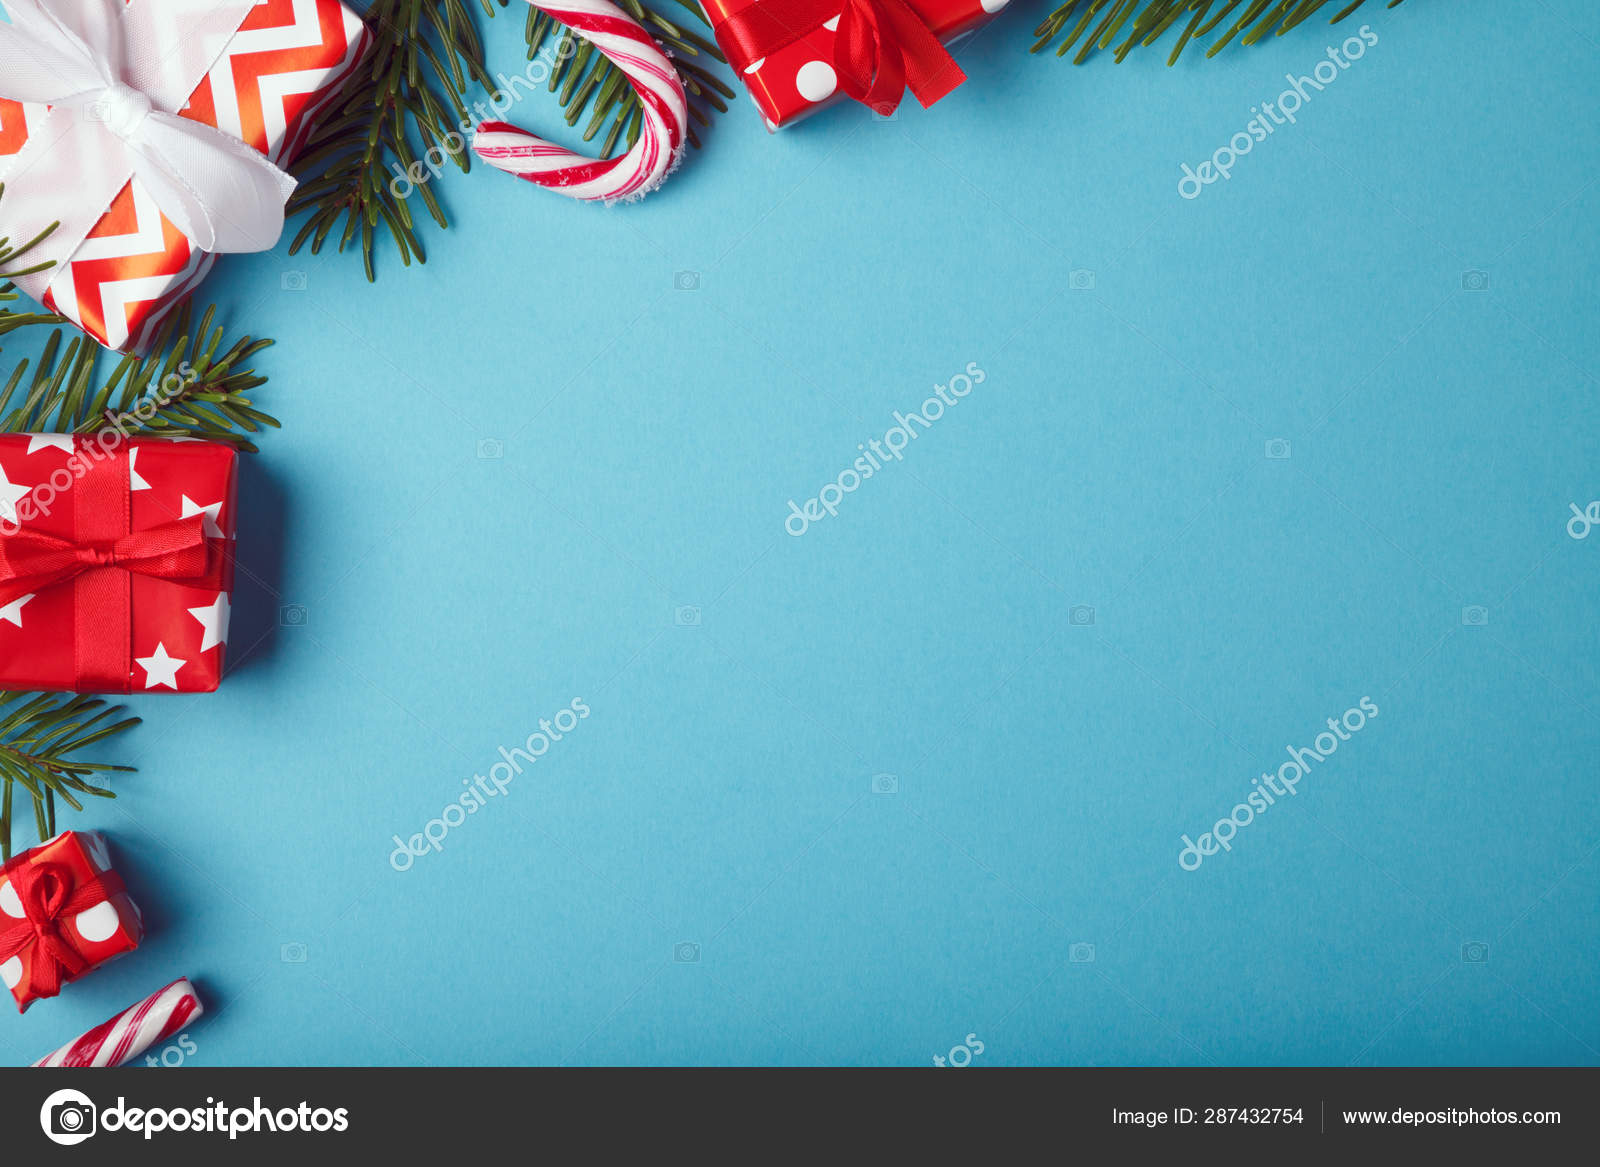 Christmas Card Template.Merry Christmas Card Template Copy Space Stock Photo